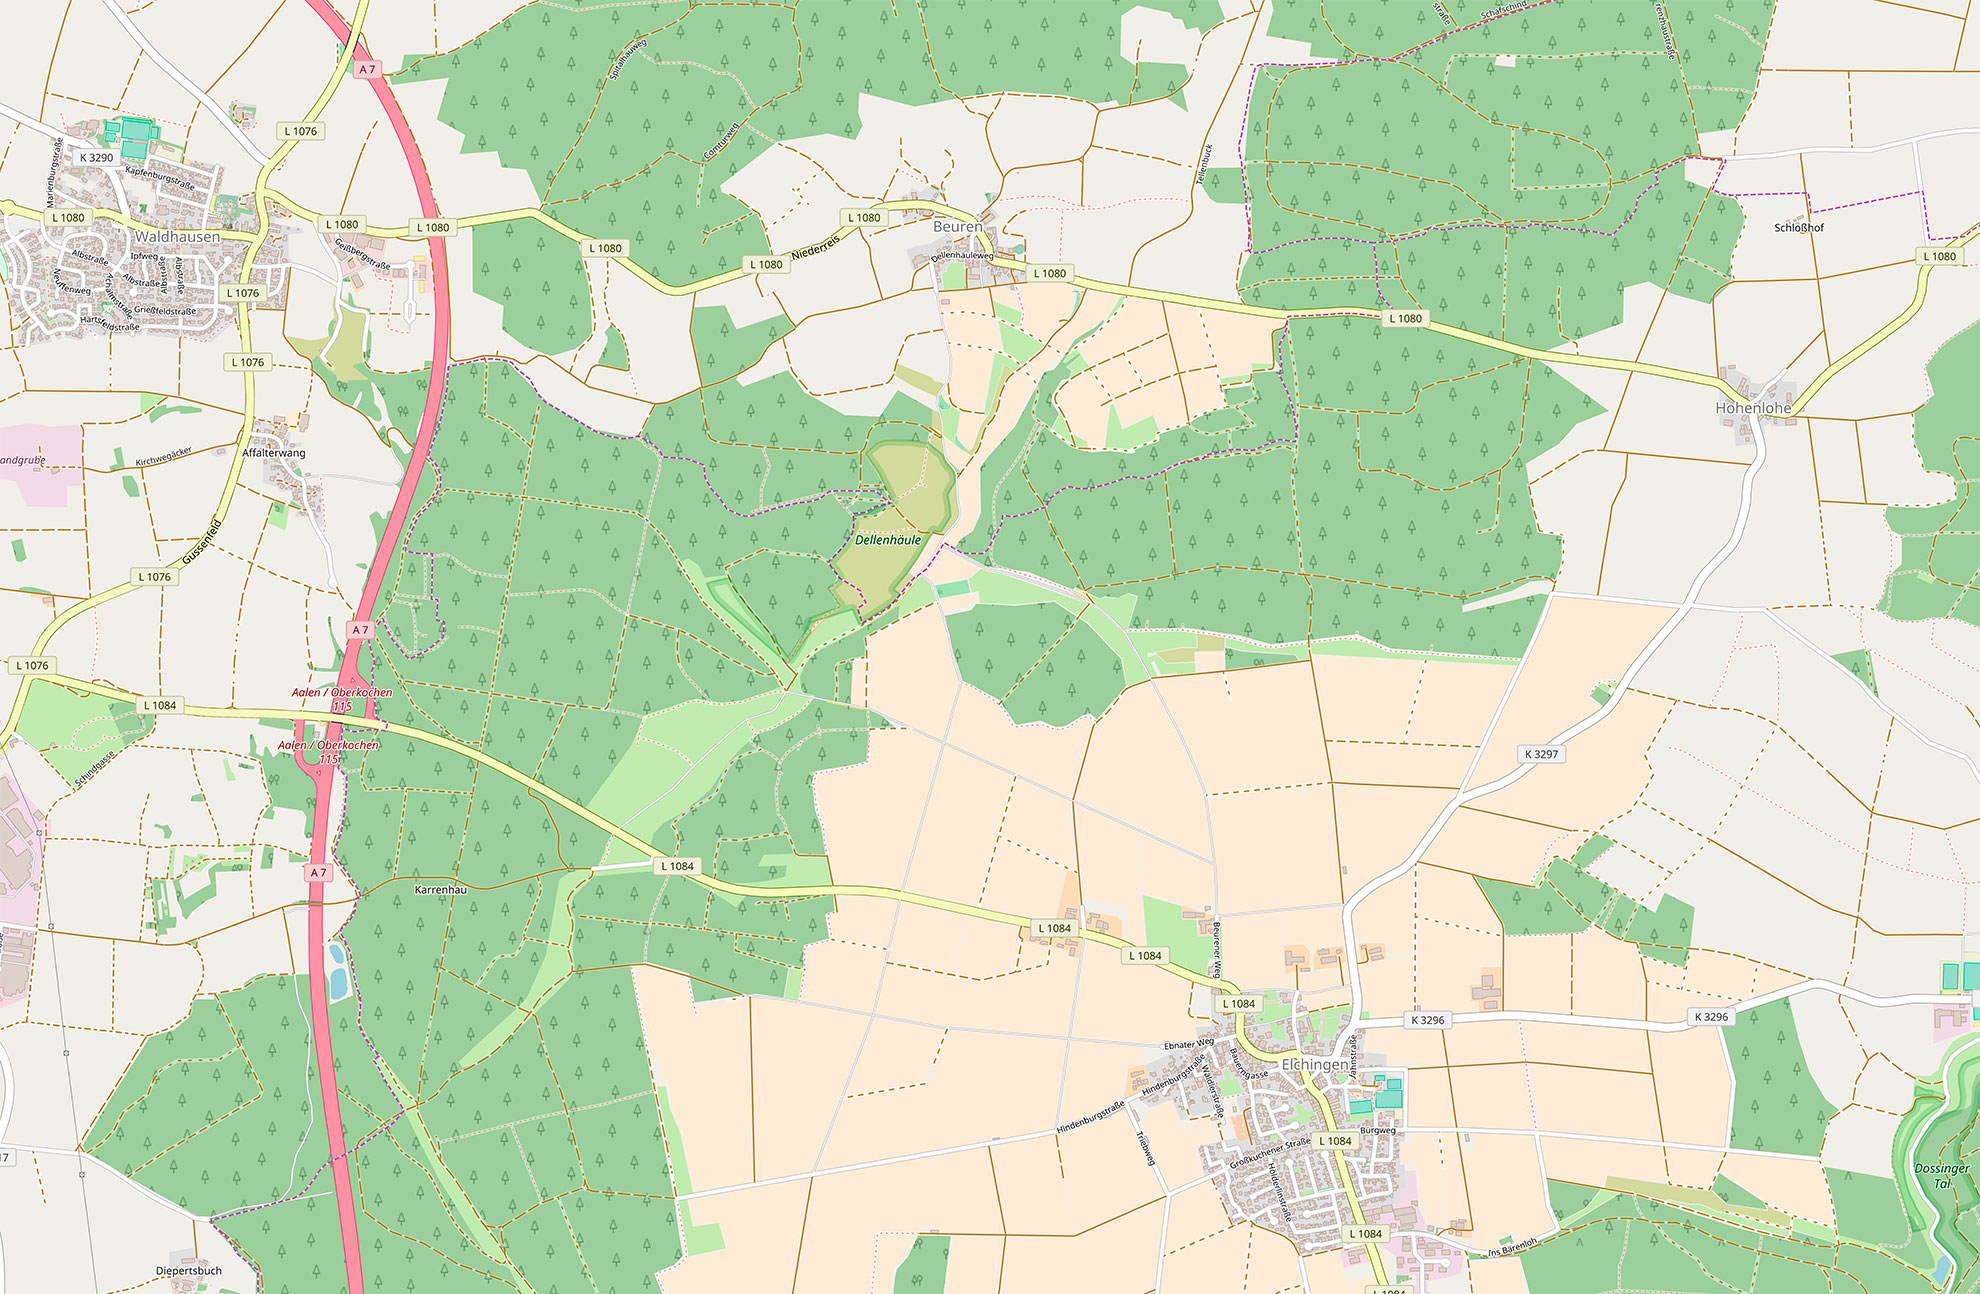 Bildquelle: Map data © OpenStreetMap contributors